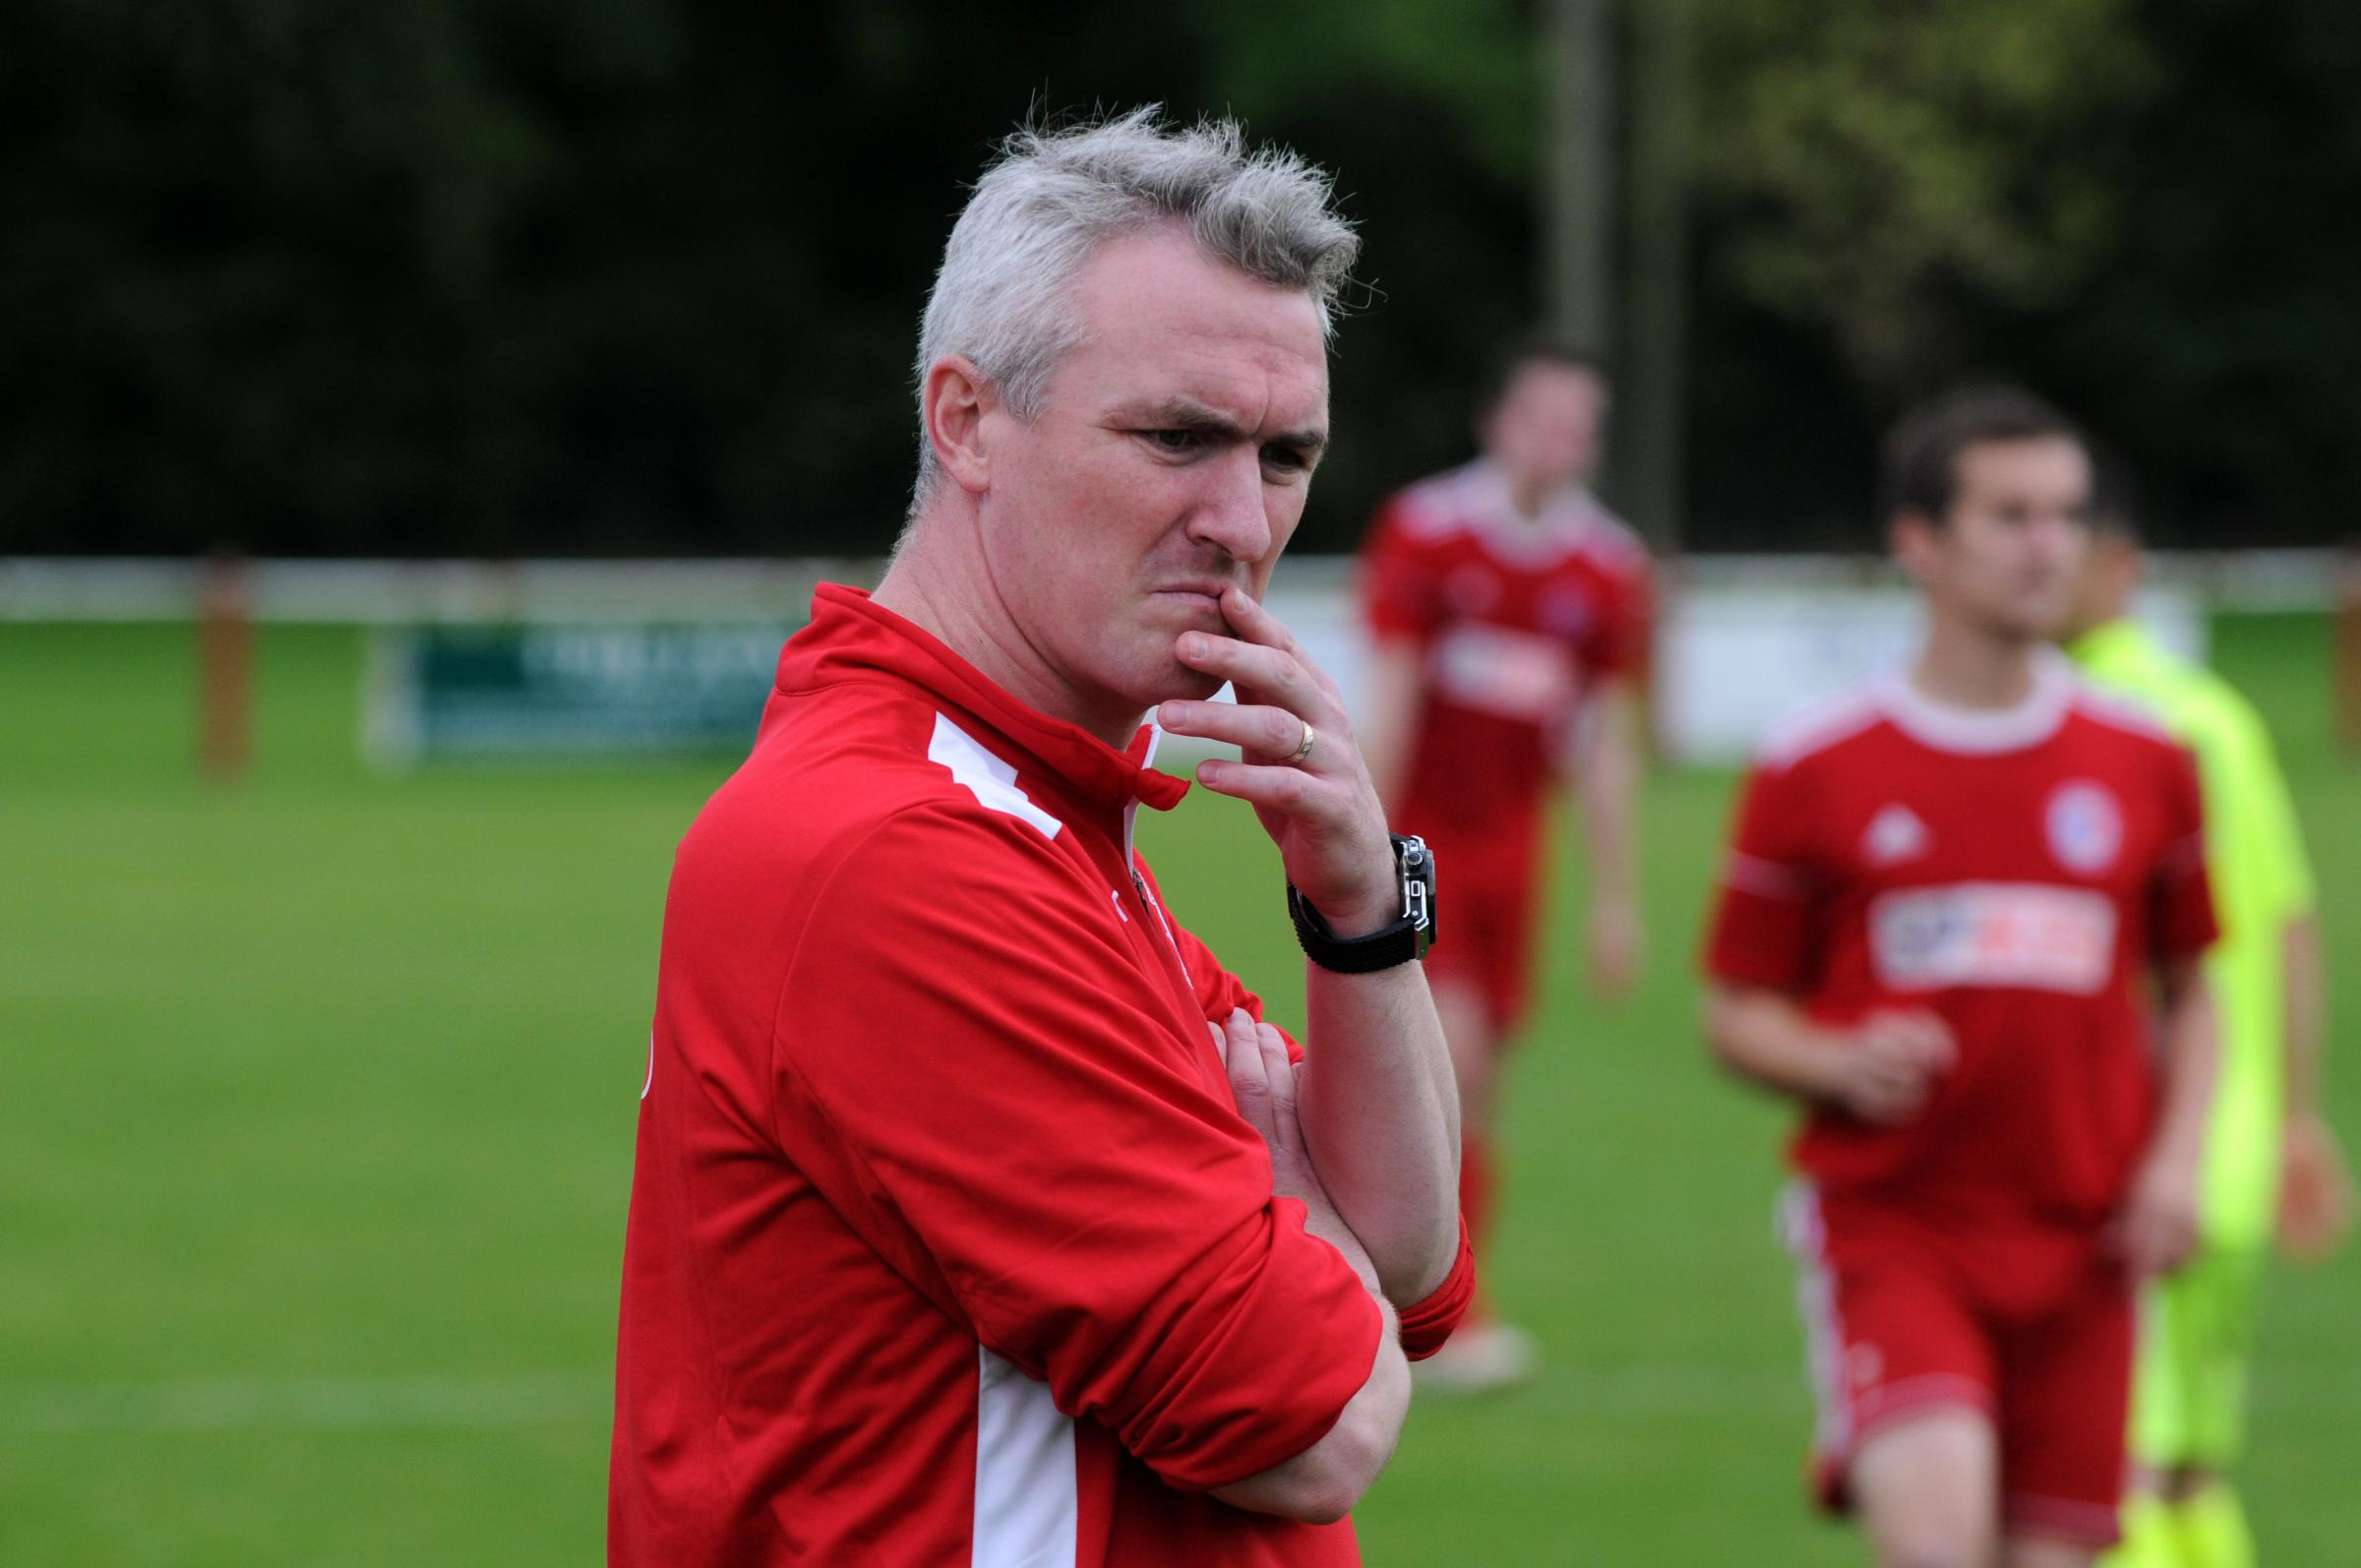 Fairford FC (red) v Binfield (yellow) Pic shows Fairford boss Jody Bevan.